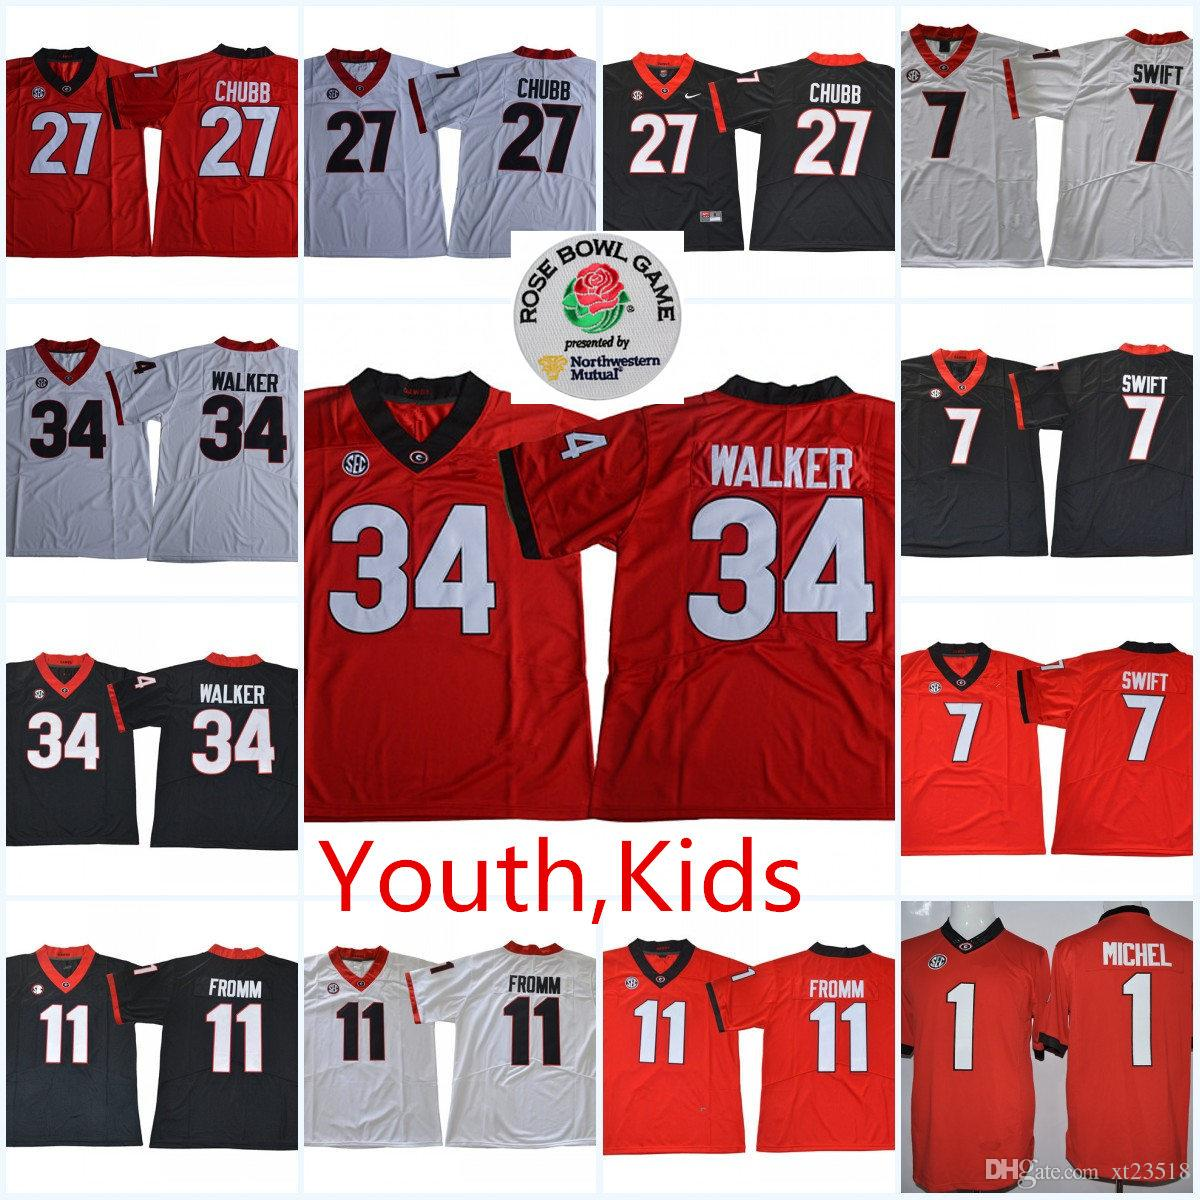 0a2a42fe1 2019 Youth NCAA SEC Georgia Bulldogs Jake Fromm College Football Jerseys  Kids Nick Chubb Herchel Walker Georgia Bulldogs Legend Jersey S 2XL From  Xt23518